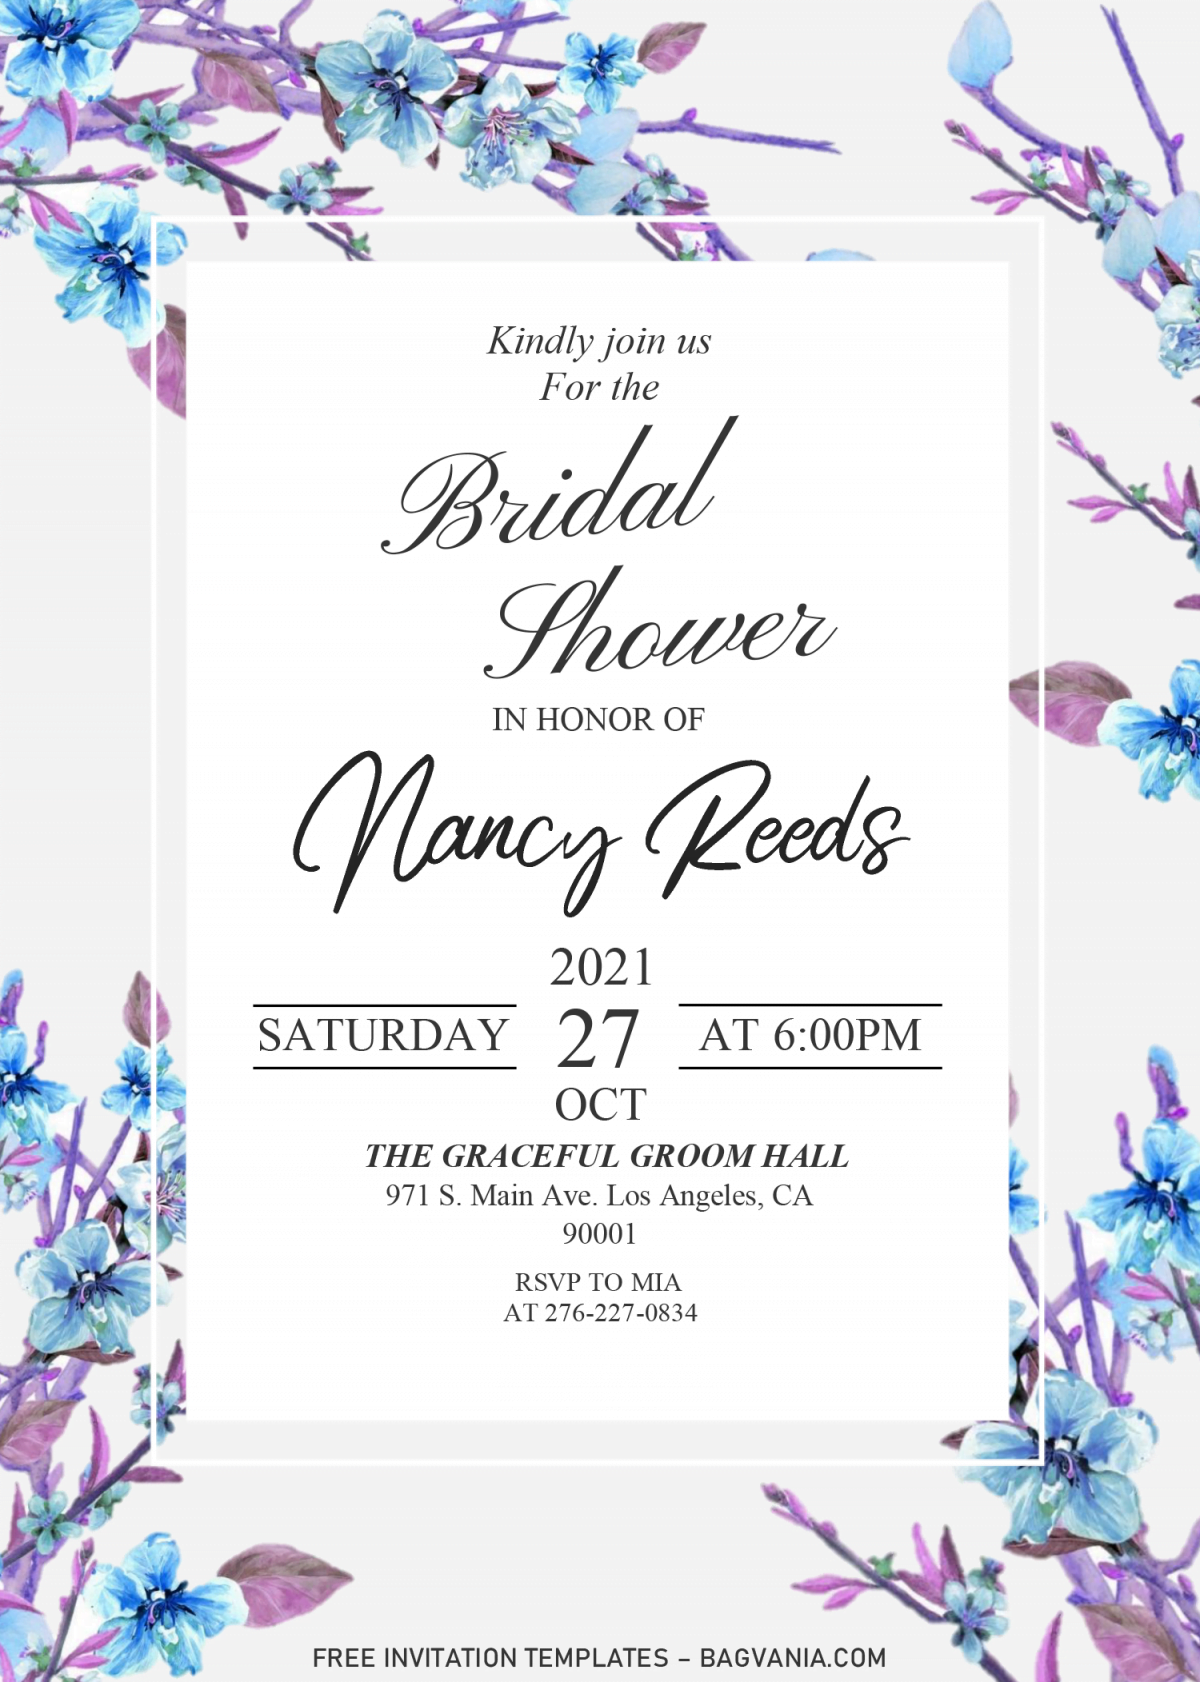 Modern Floral Invitation Templates - Editable .DOCX and has aesthetic fonts